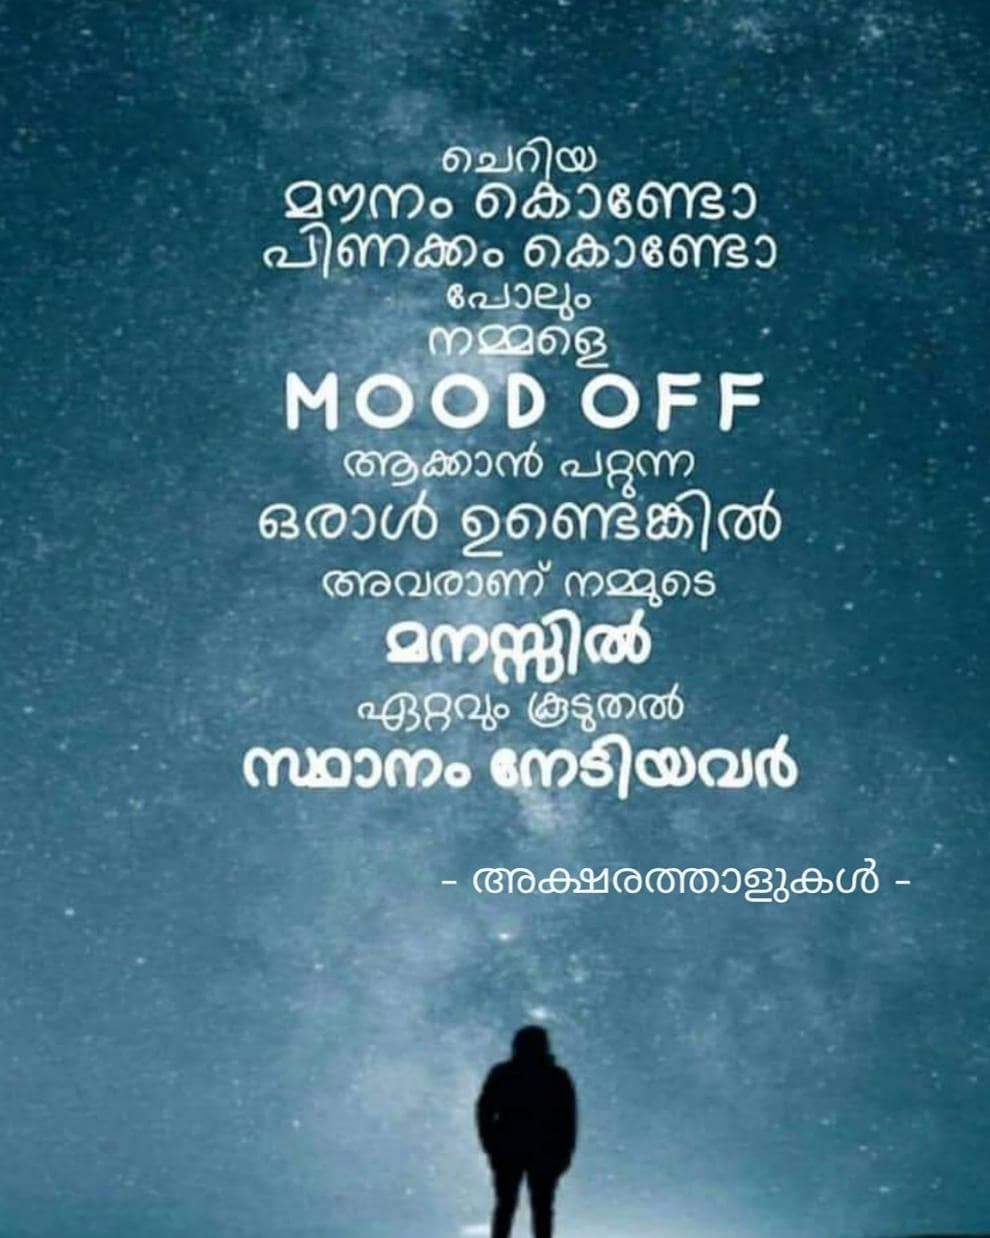 Mood Off Malayalamwritings Thoolika Verukalofficial Malayalampoem Malayalamwritings Thoolik Best Friend Quotes Funny Distance Love Quotes Friends Quotes